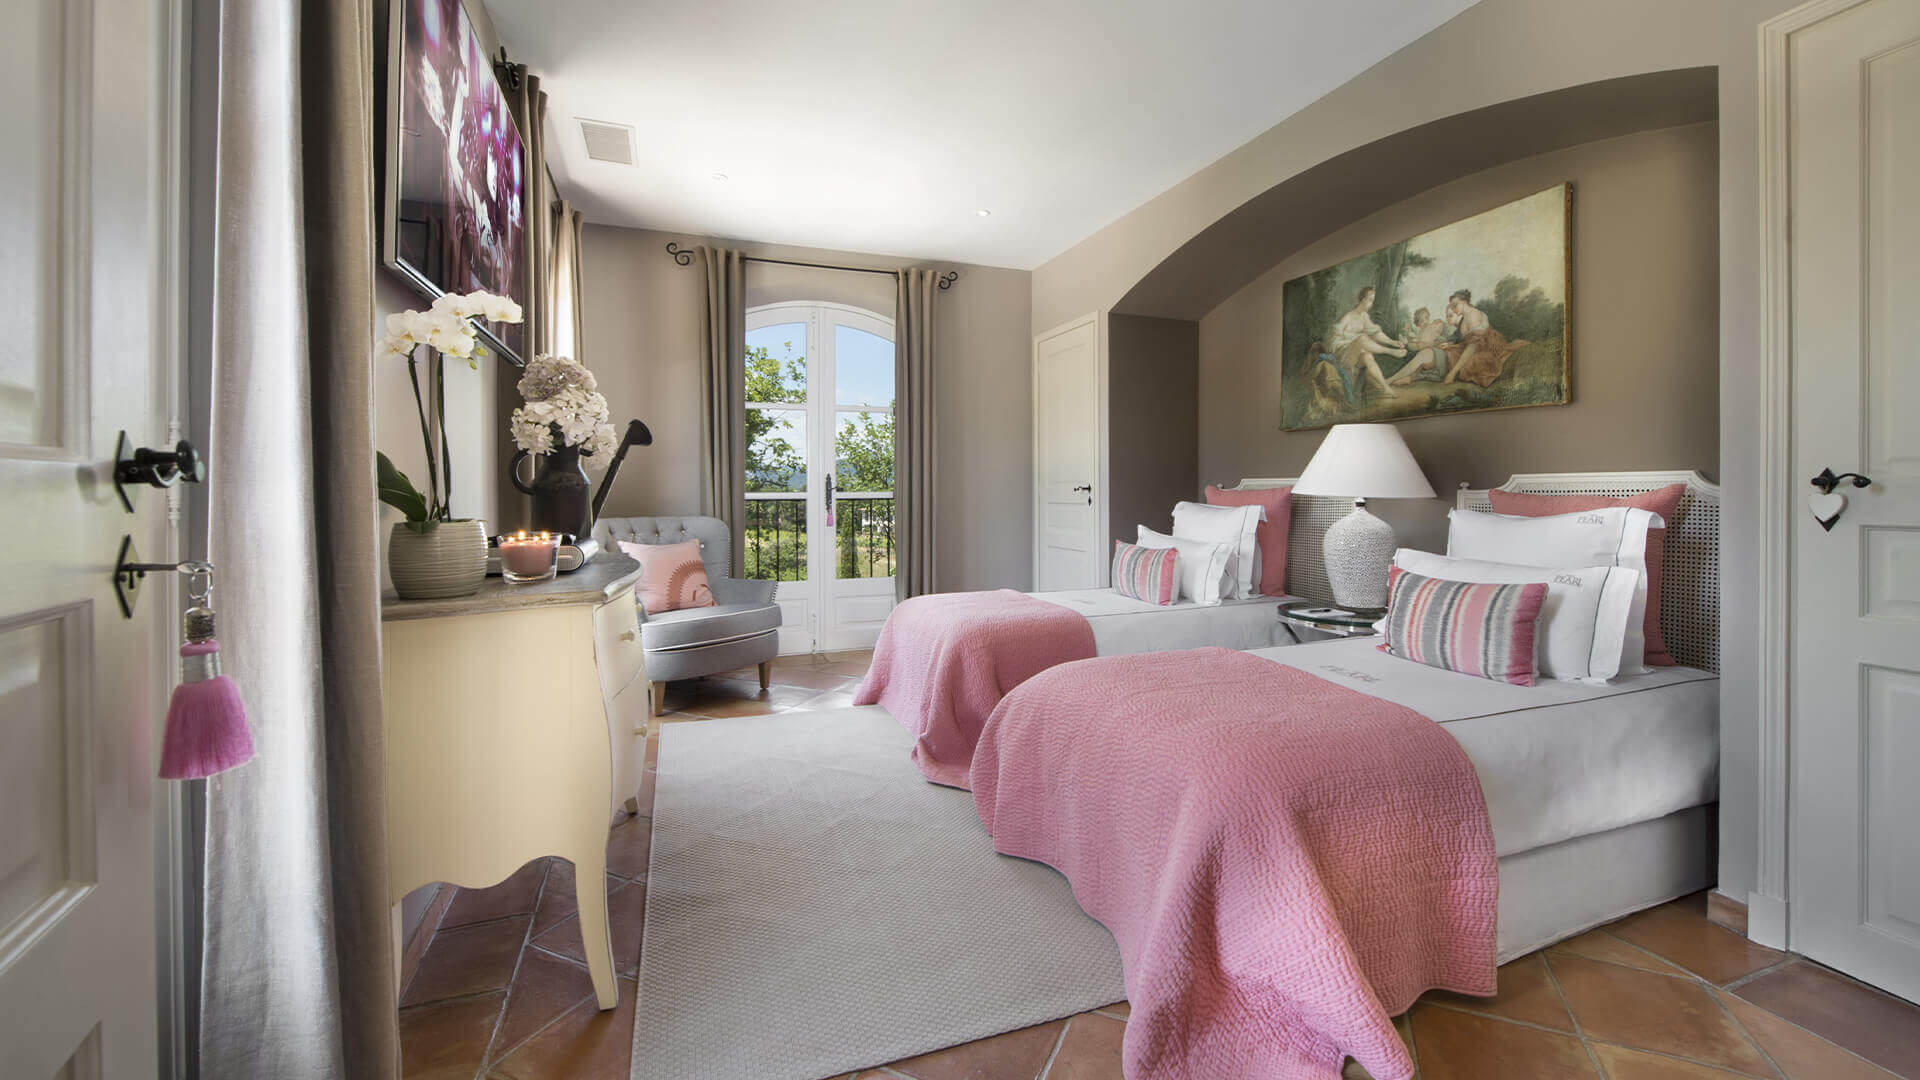 Saint Tropez Villa bedroom with two beds and pink carpets